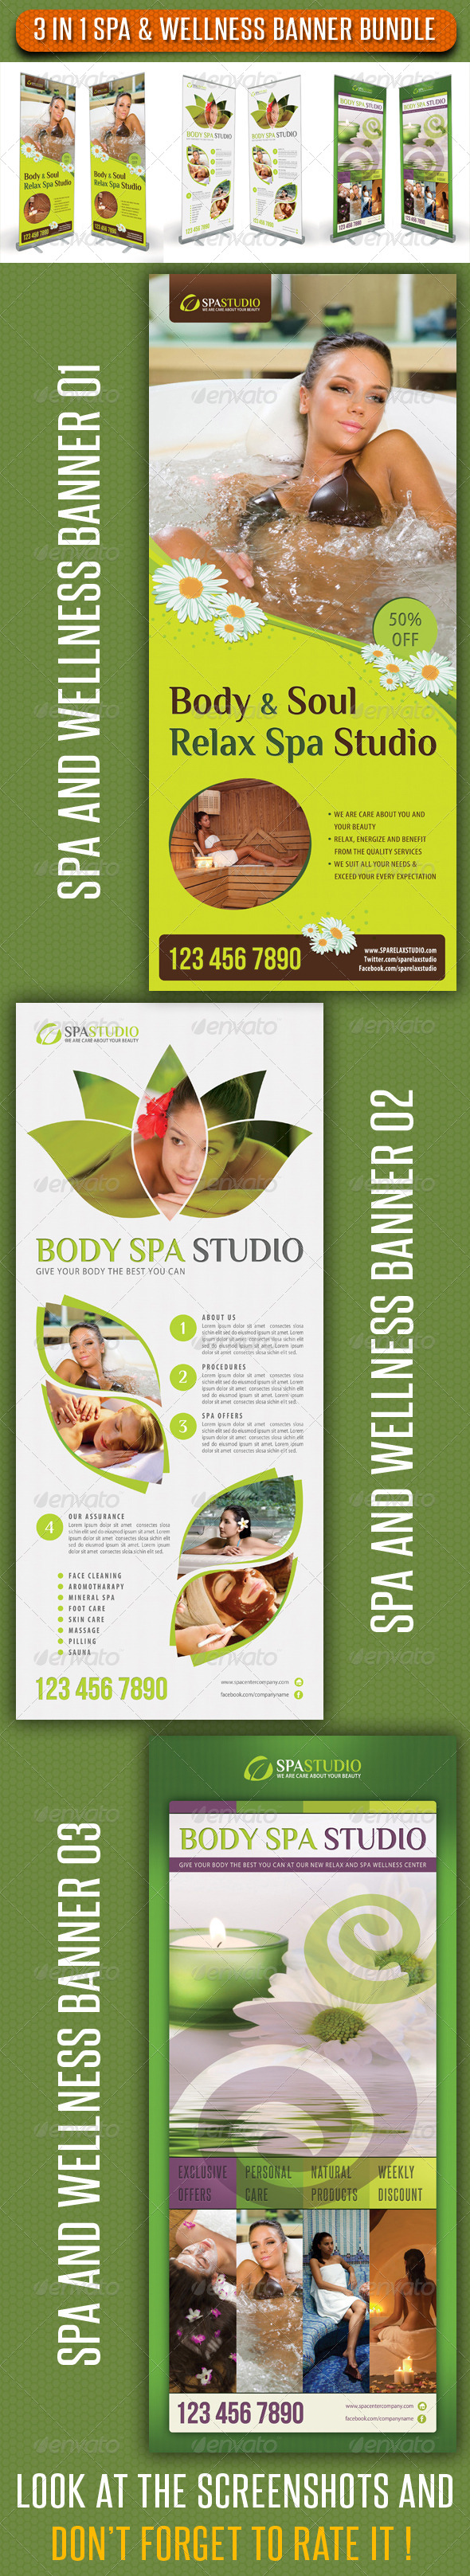 GraphicRiver 3 in 1 Spa Wellness Banner Bundle 02 6782079